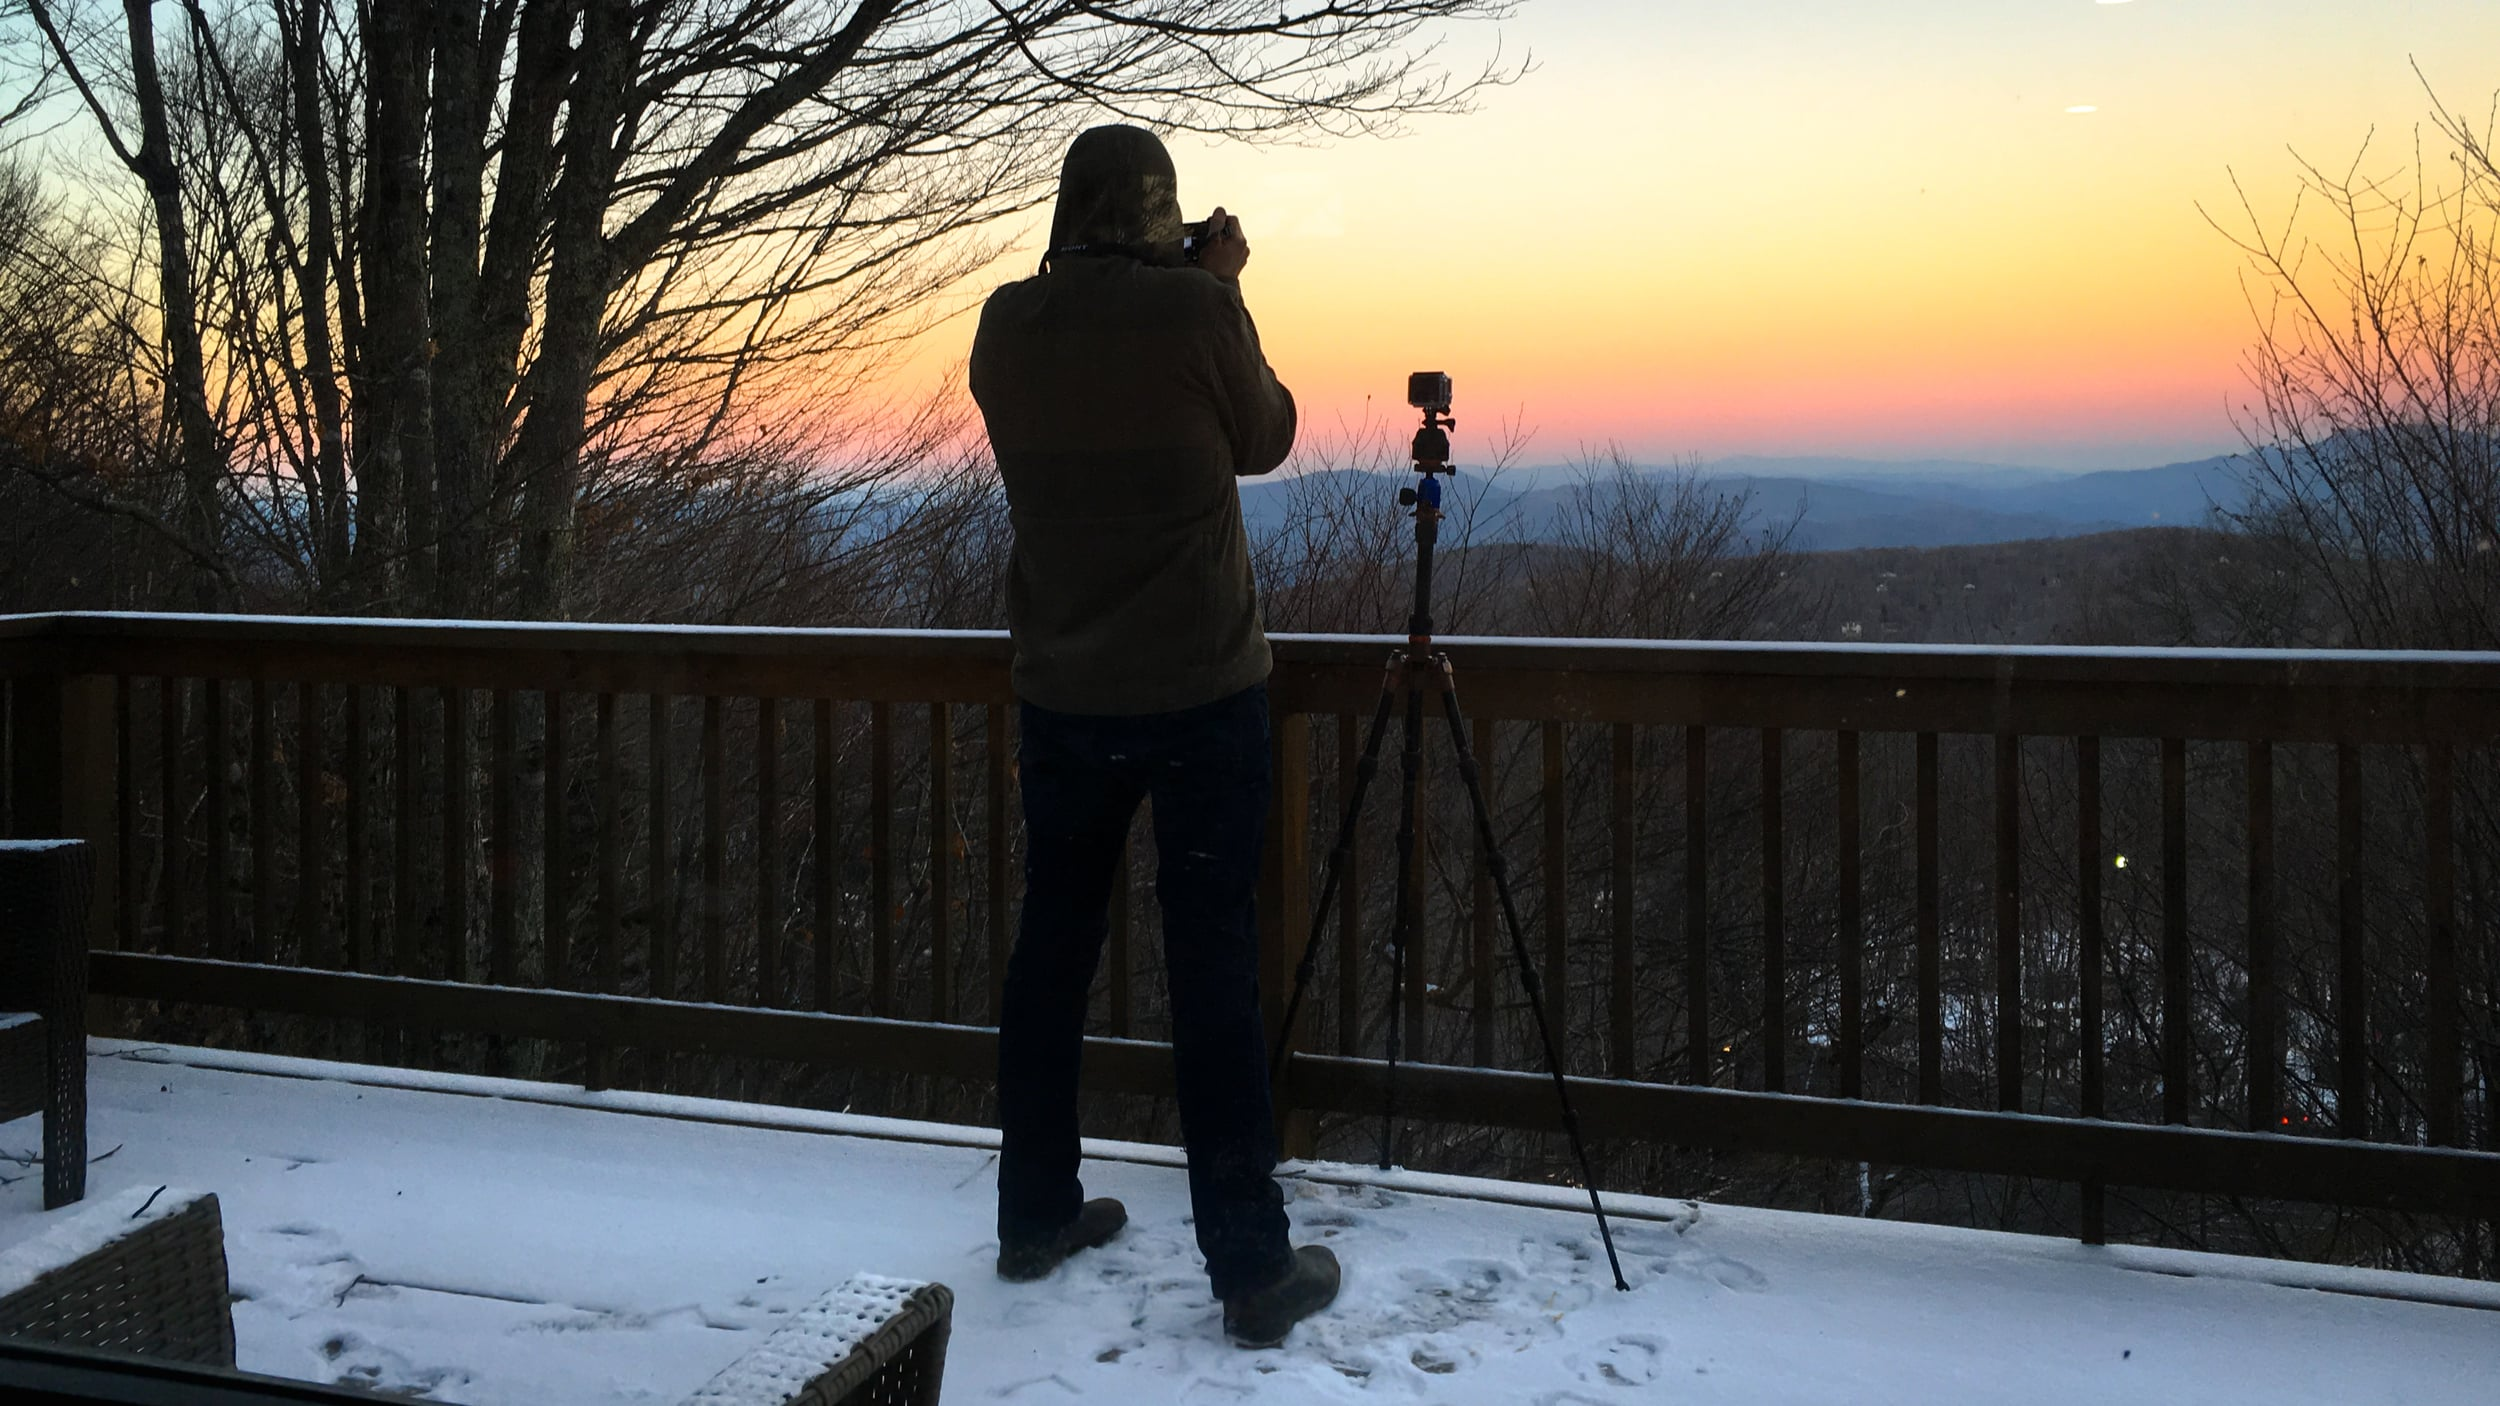 Bonus: a behind-the-scenes shot that my wife took with her iPhone 6s while I was out shooting on the deck.